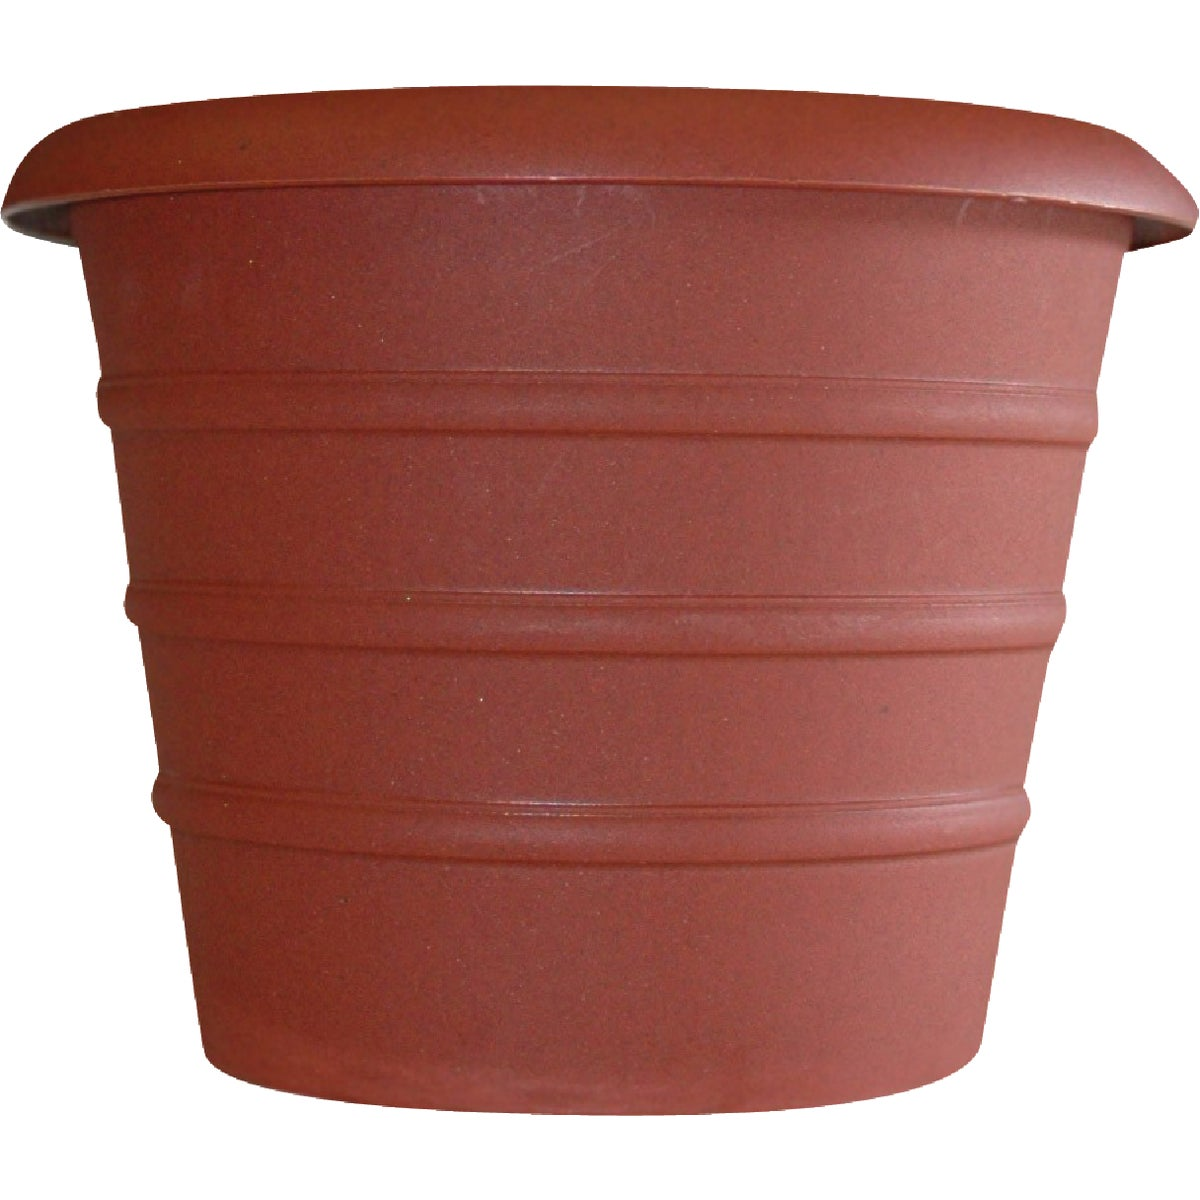 "20""T COTTA MARINA POT - MSA20001E07 by Myers Industries Inc"